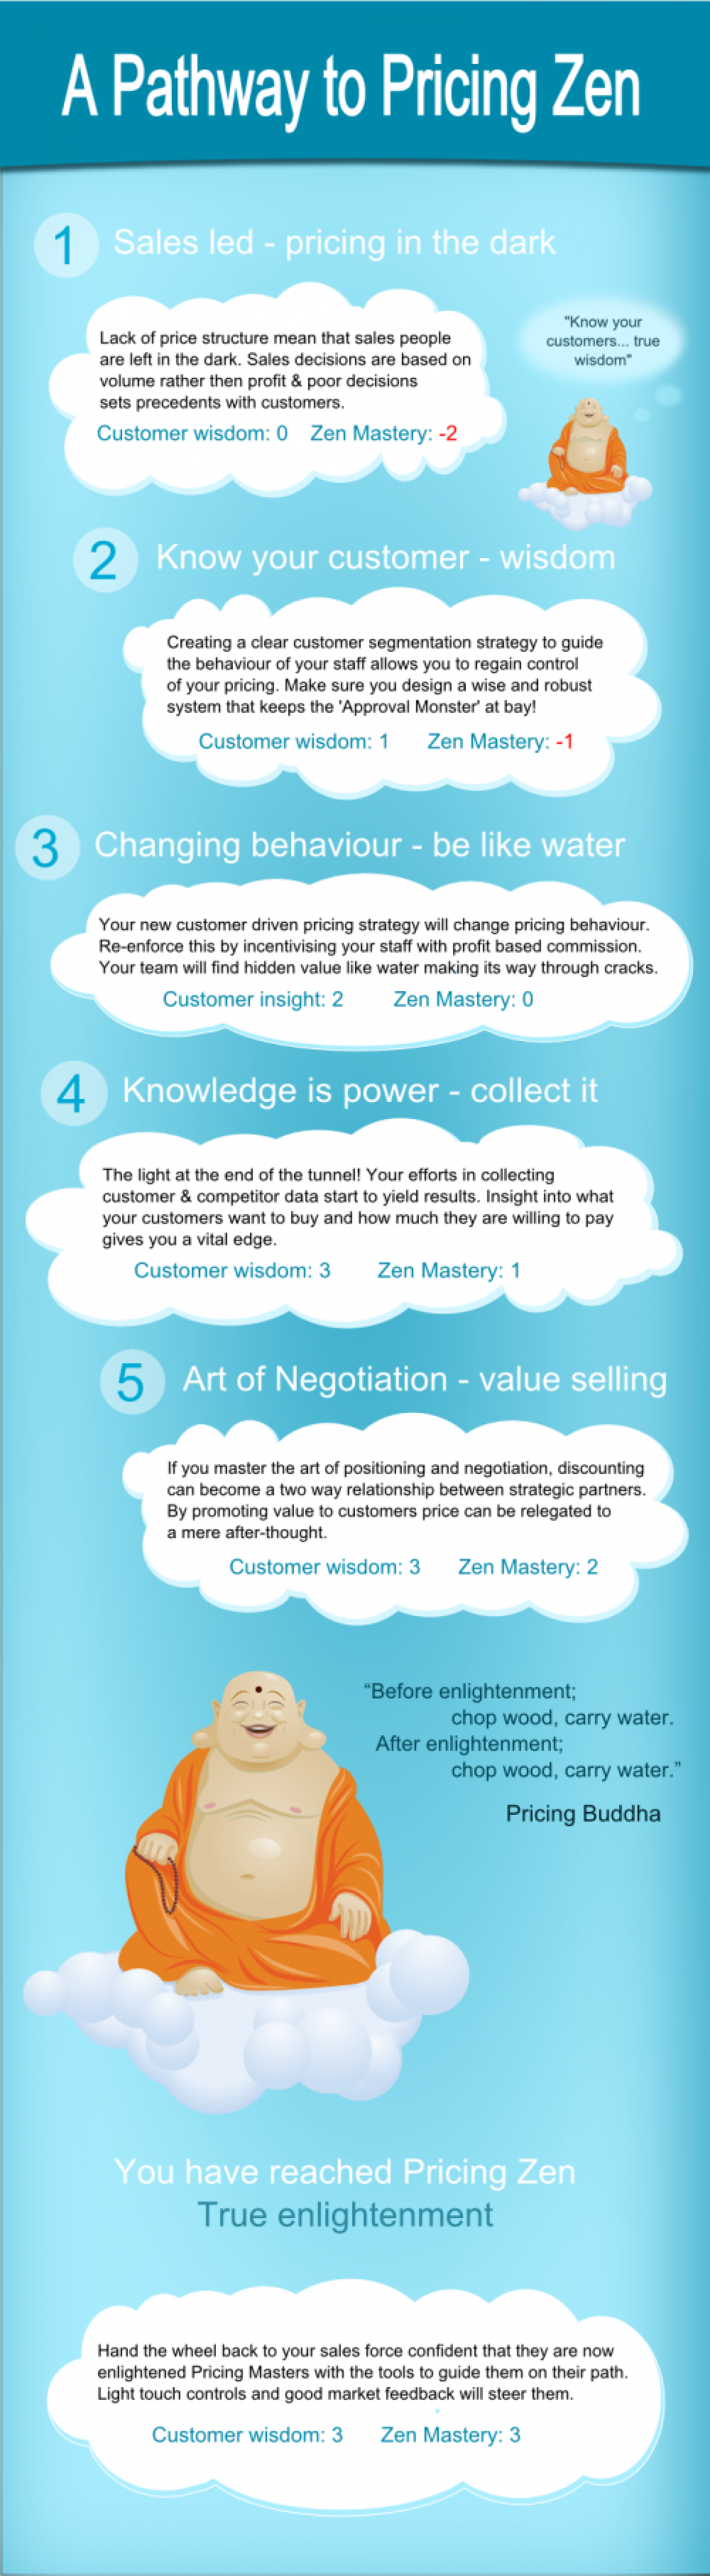 Pathway to Pricing Zen Infographic